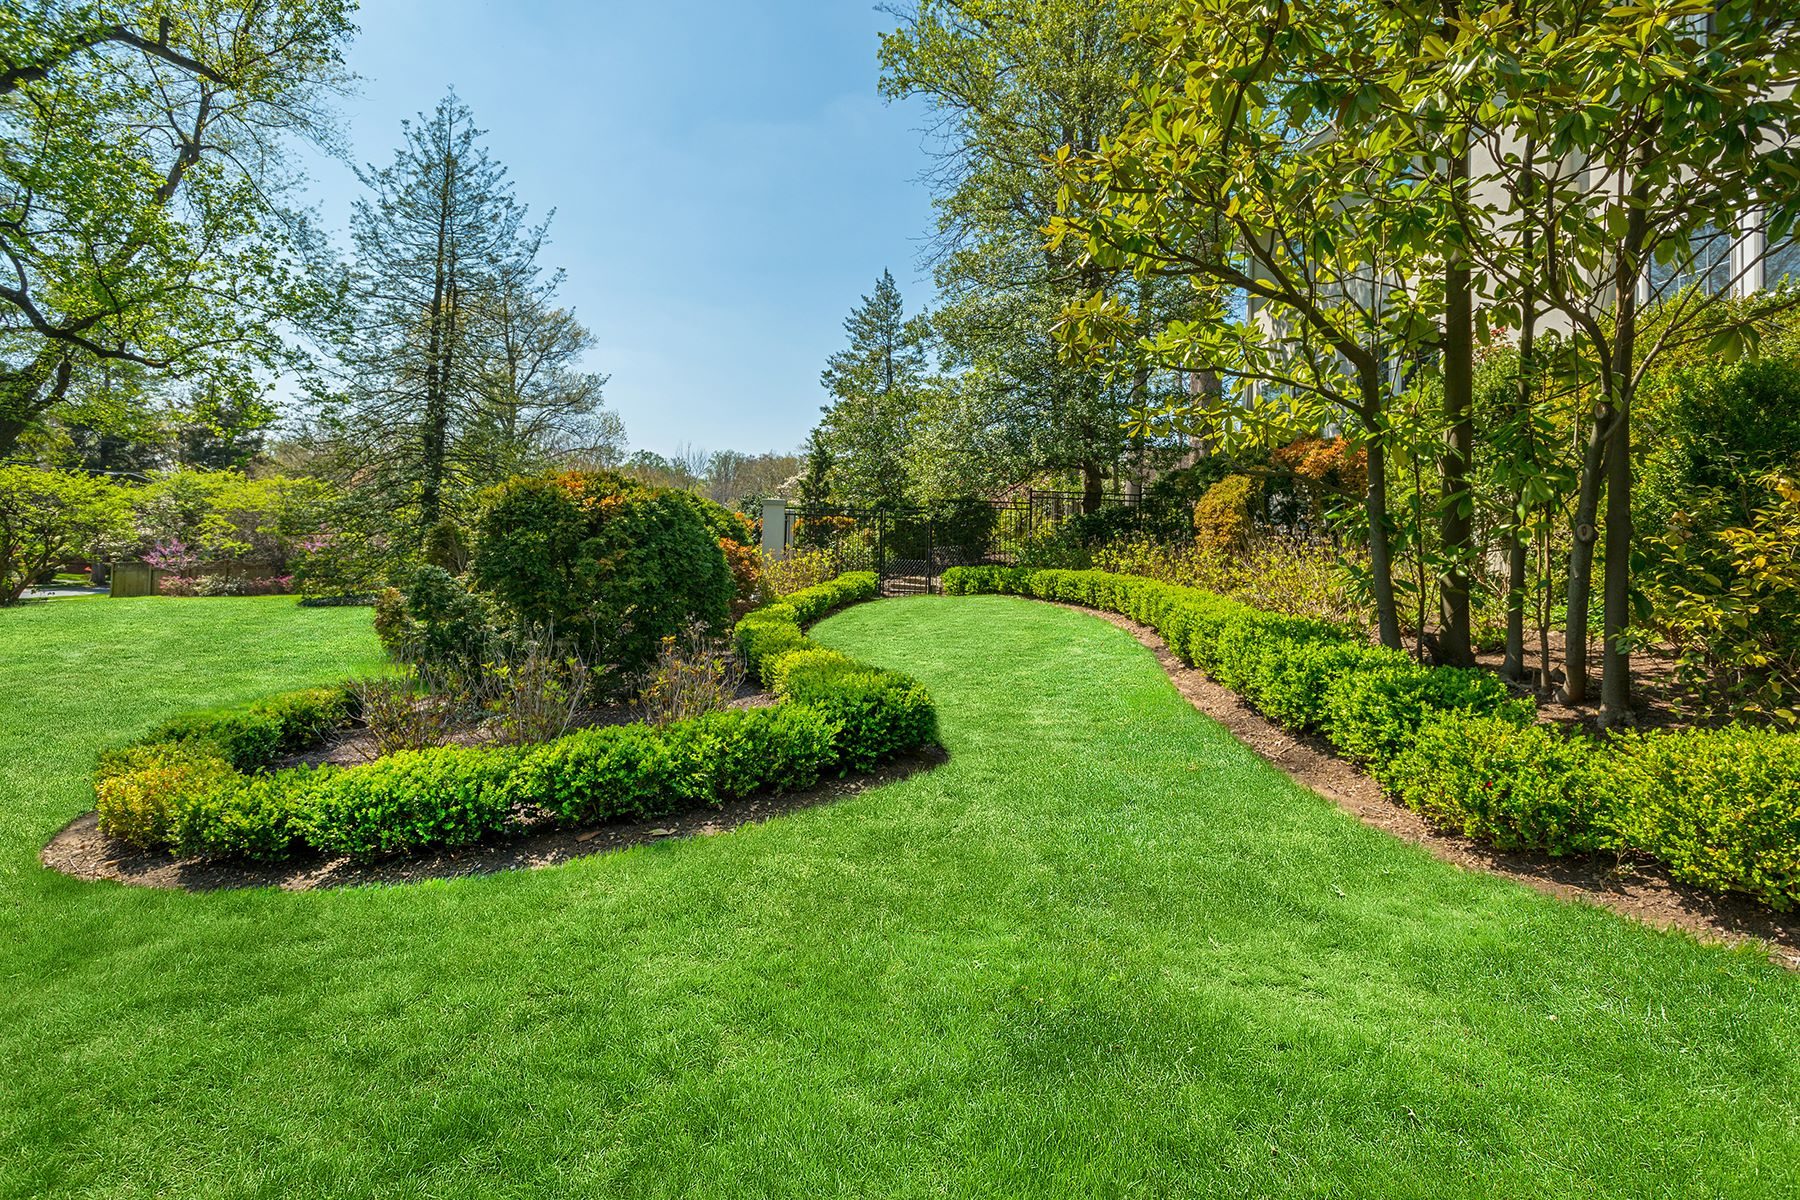 Additional photo for property listing at 5215 Edgemoor Lane, Bethesda 5215 Edgemoor Ln Bethesda, Μεριλαντ 20814 Ηνωμενεσ Πολιτειεσ